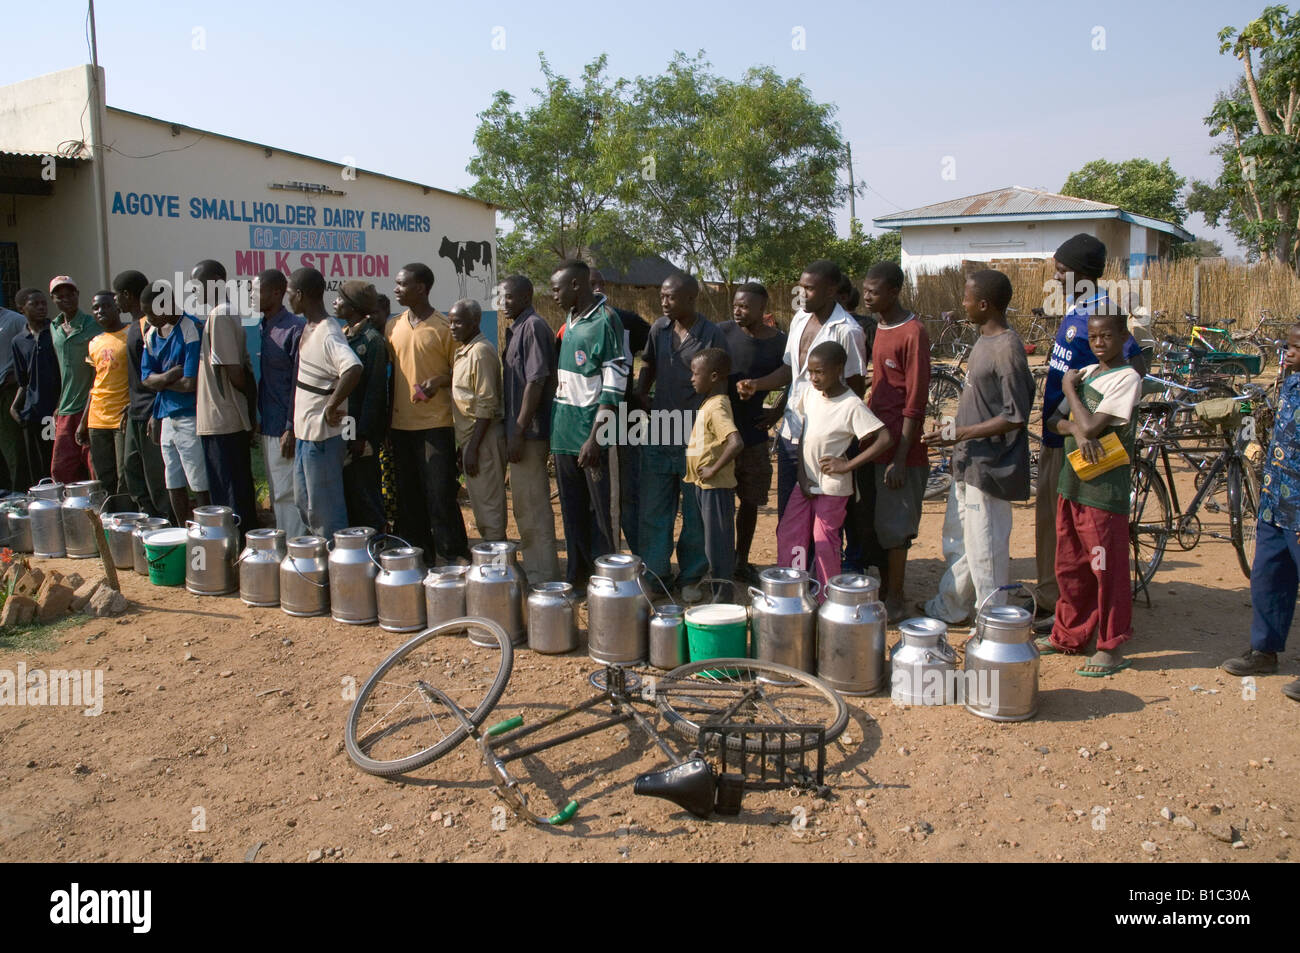 Dairy farmers queueing to deliver fresh milk to a smallholder dairy in Magoye, Zambia - Stock Image